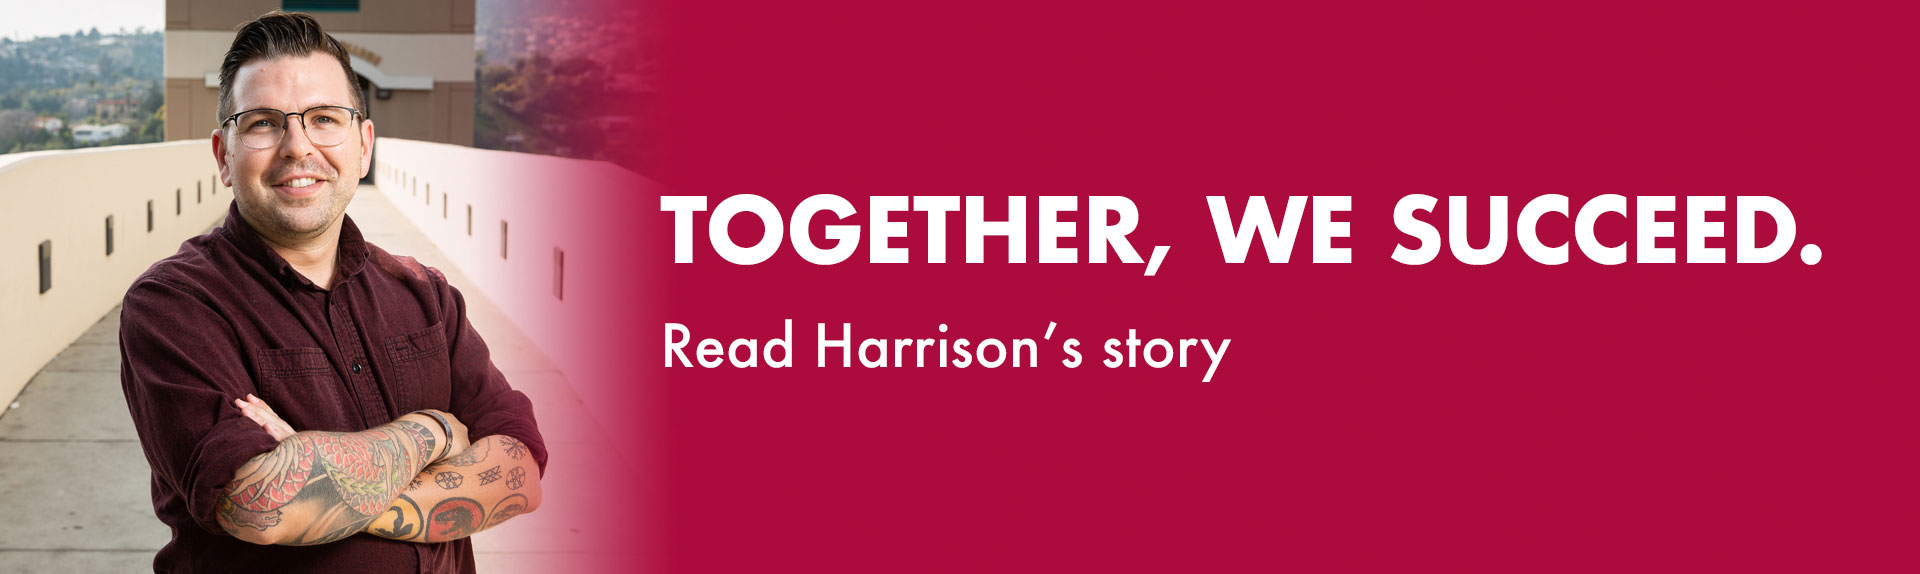 Together, we succeed. Read Harrison's story